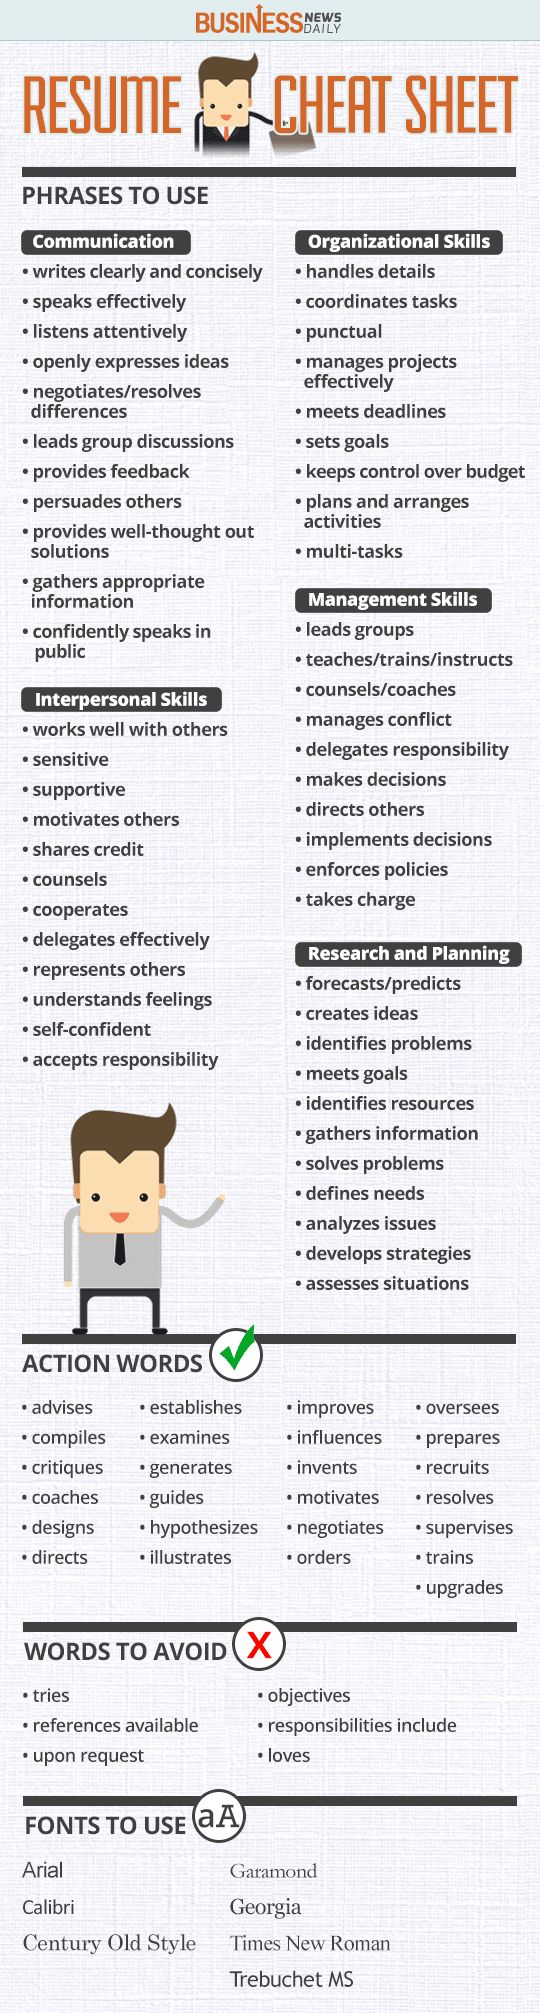 Strong Words To Use In A Resume 119 Best Job Resume Images On Pinterest  Gym Career And Productivity